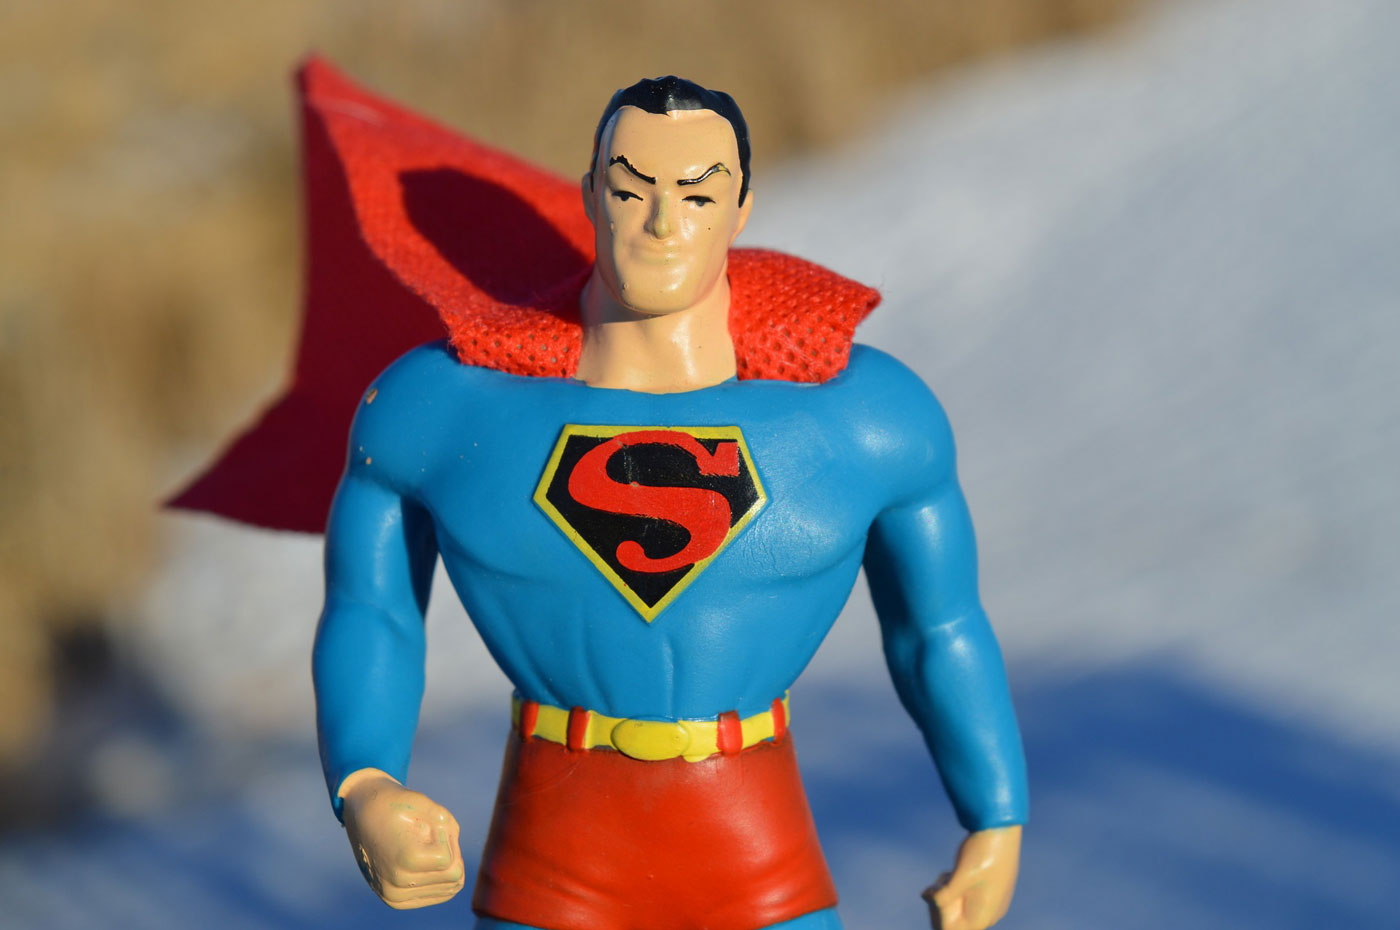 Superman character for super performance